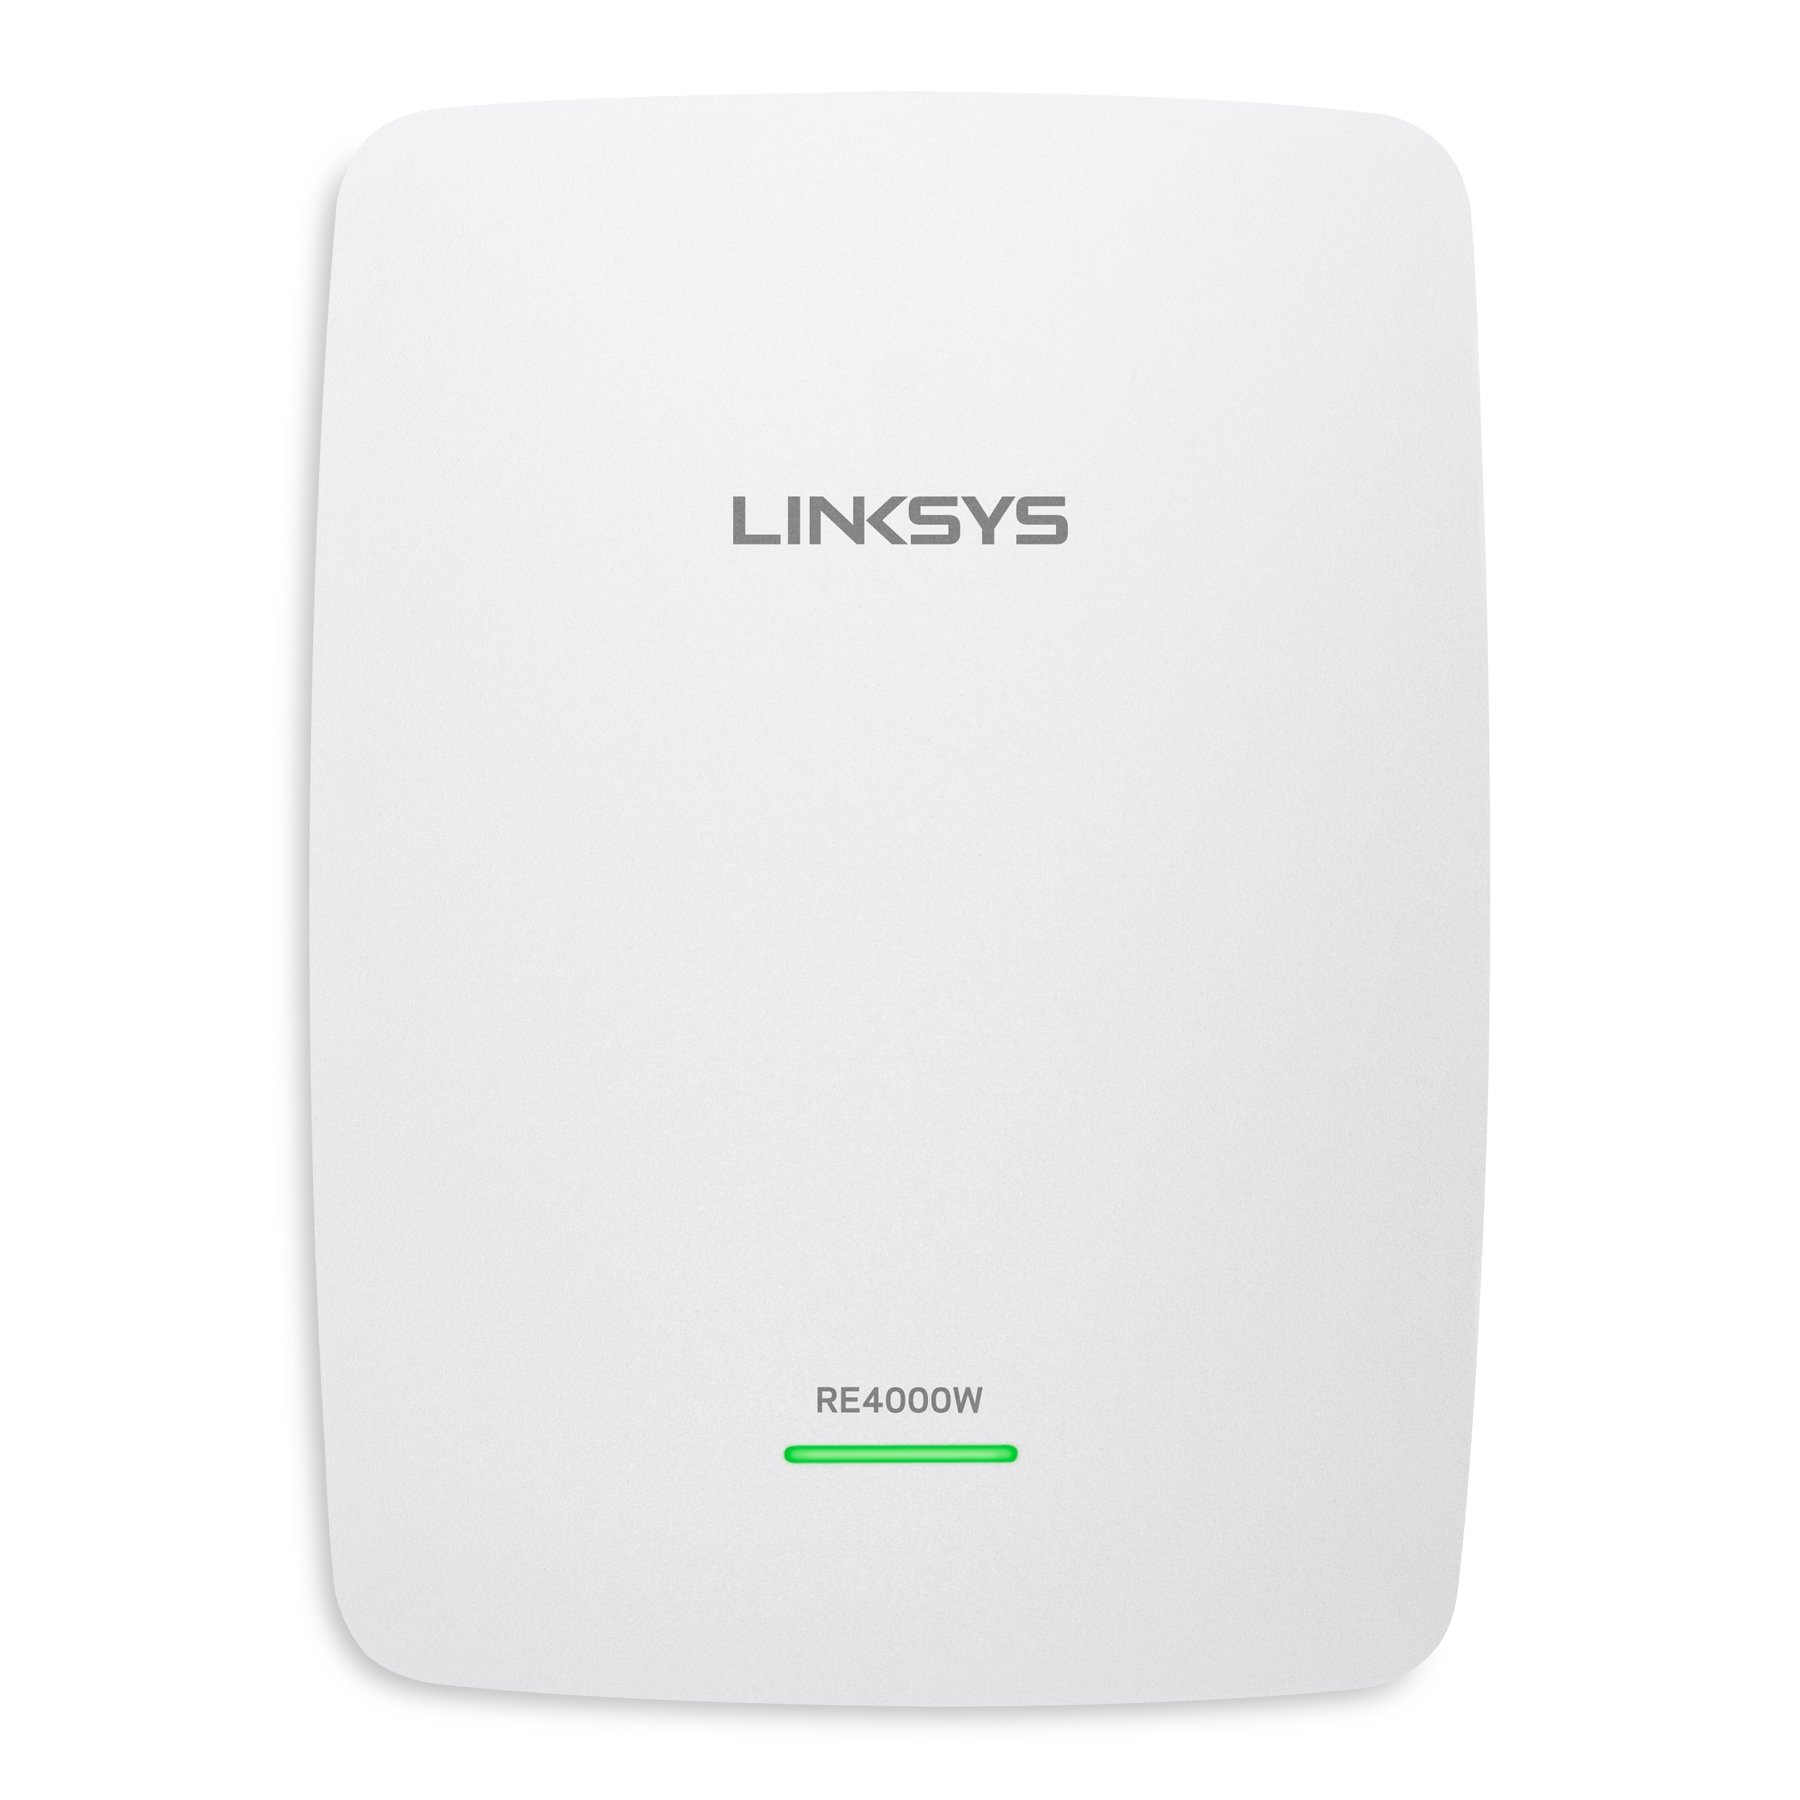 Linksys RE4000W N600 PRO Wi-Fi Range Extender (RE4000W) by Linksys